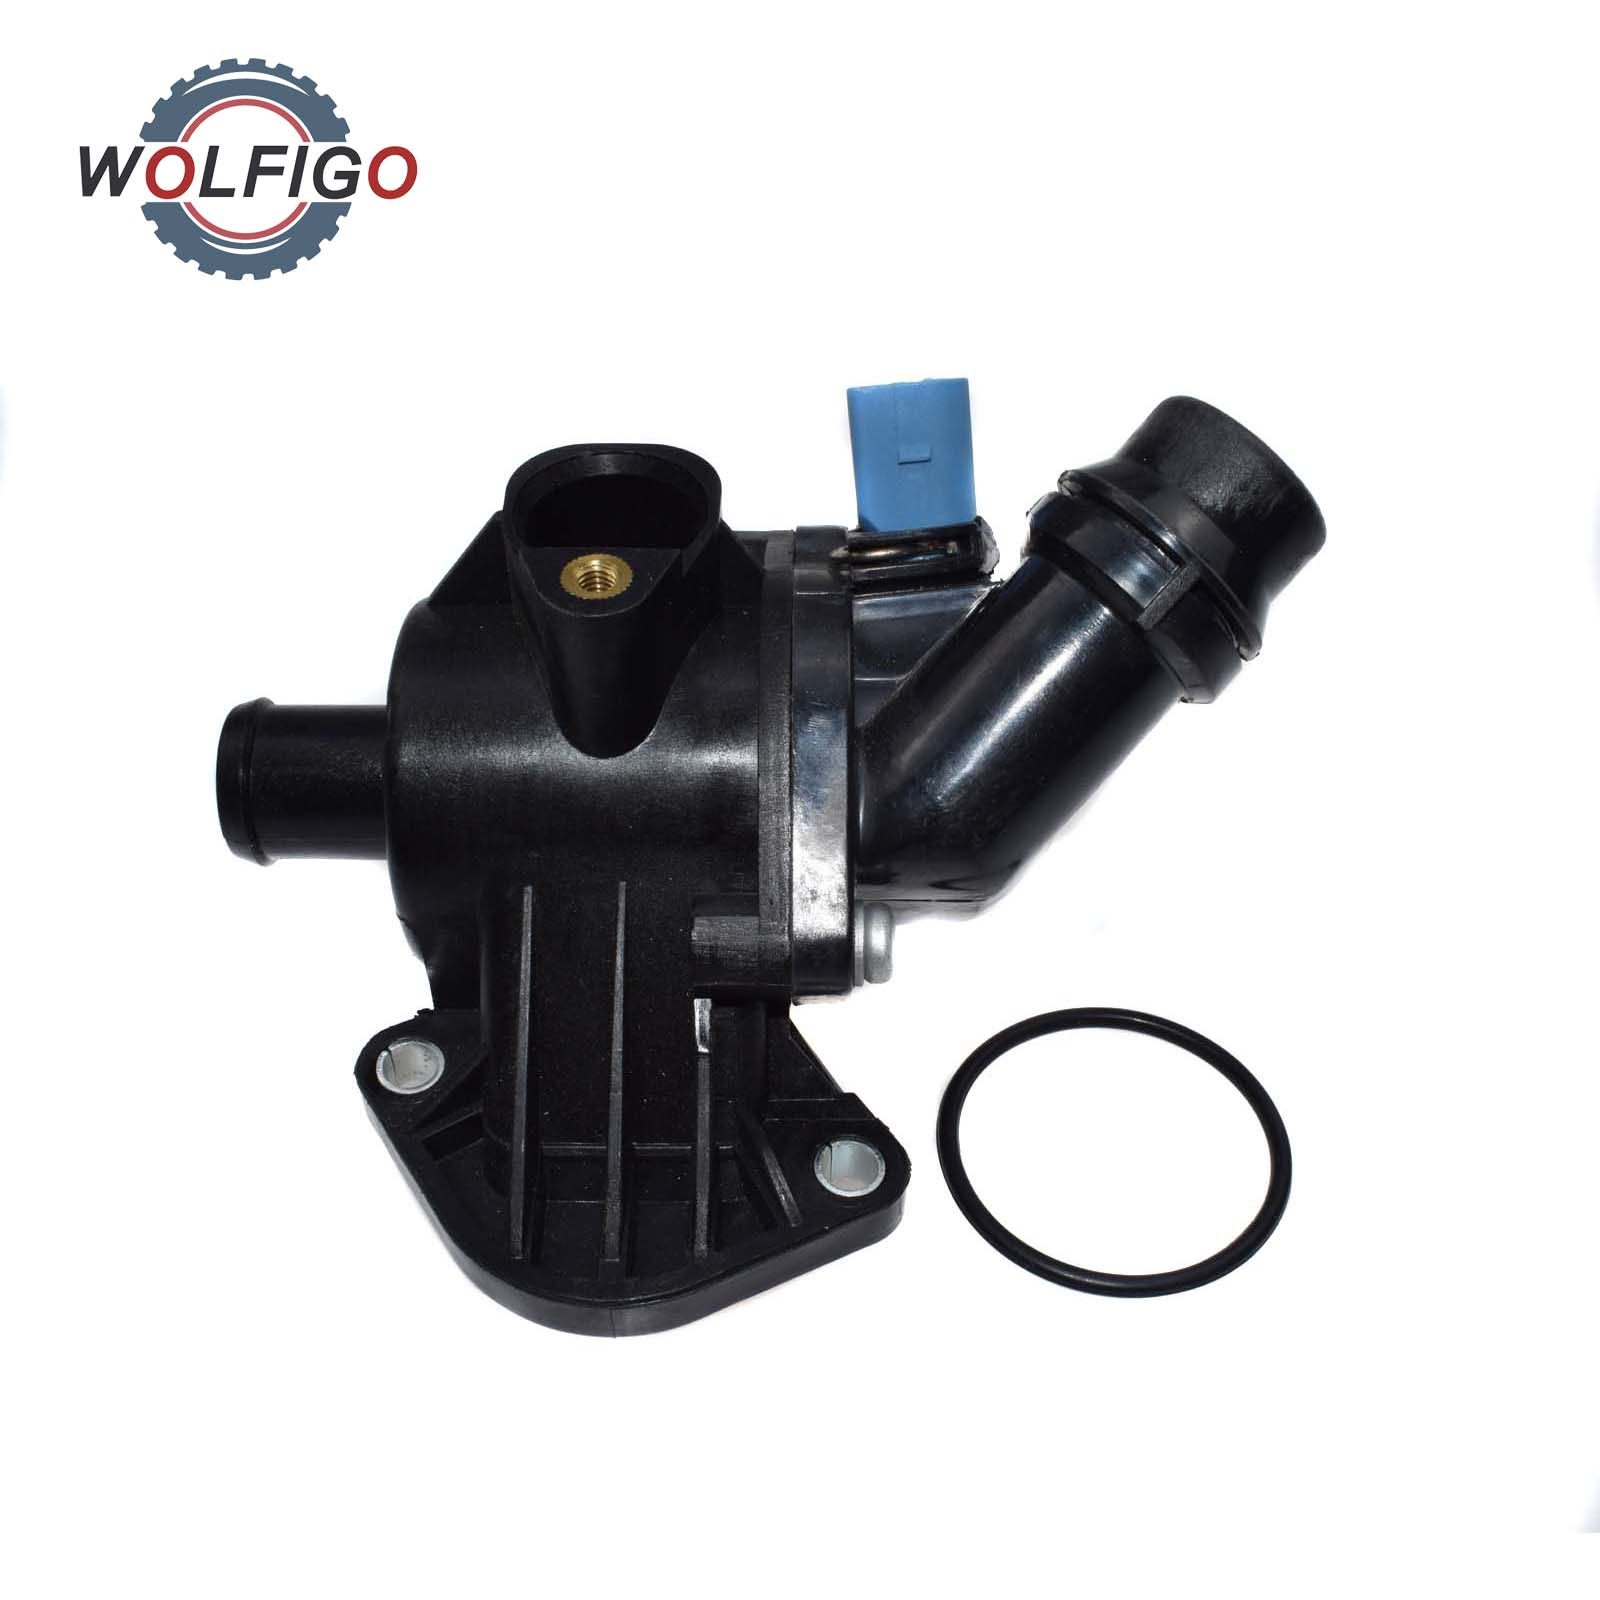 ST 2 thermostat with housing for Audi A4 06B121111K A4 B6 B7 1.8T 2.0